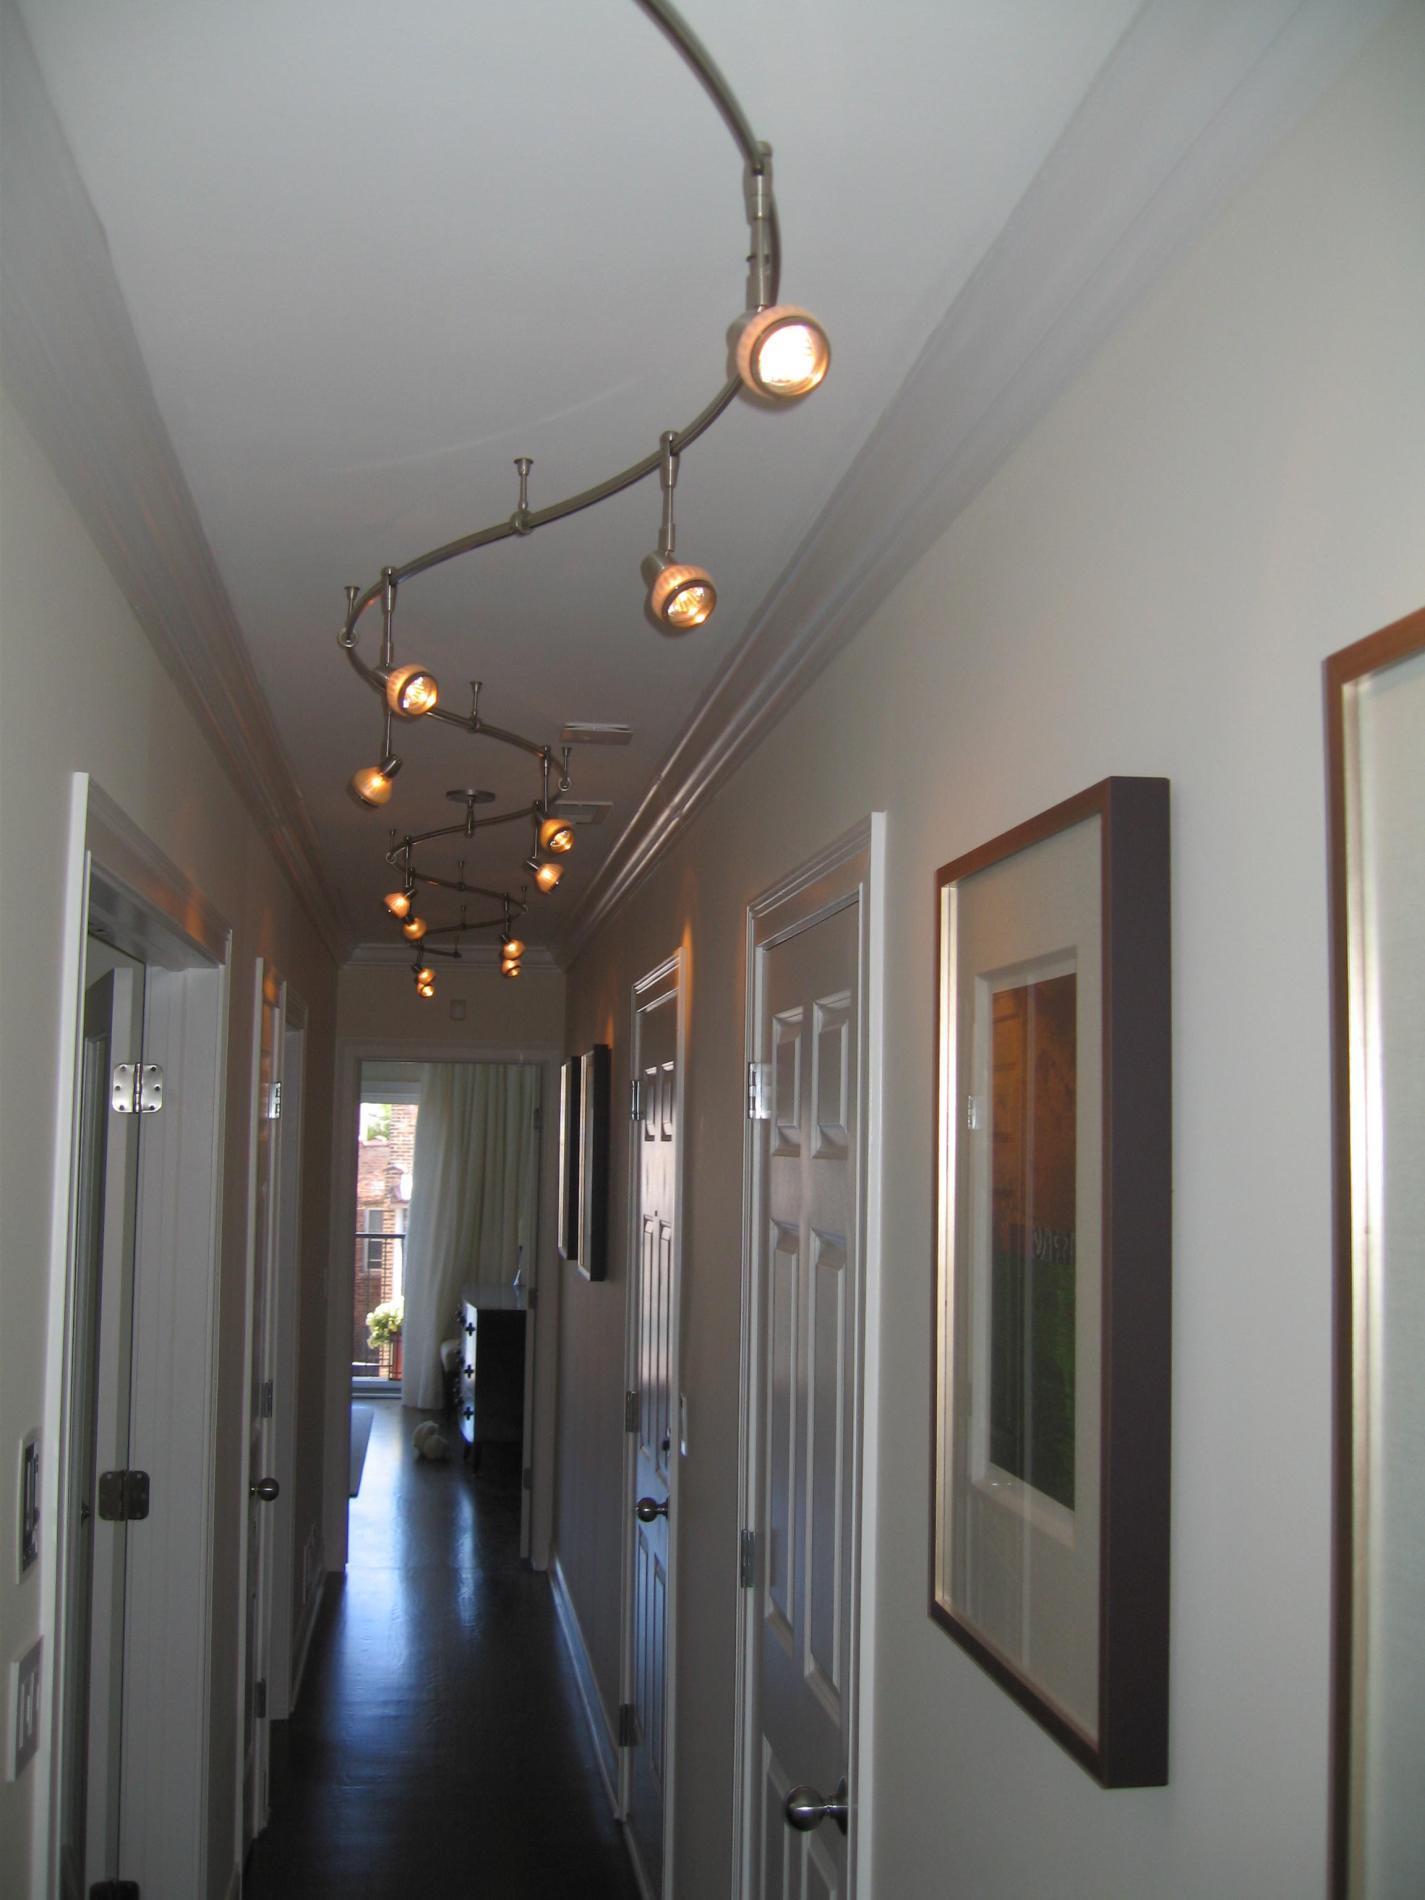 ceiling light ideas for hallway - 10 Hallway ceiling lights ideas you should think about